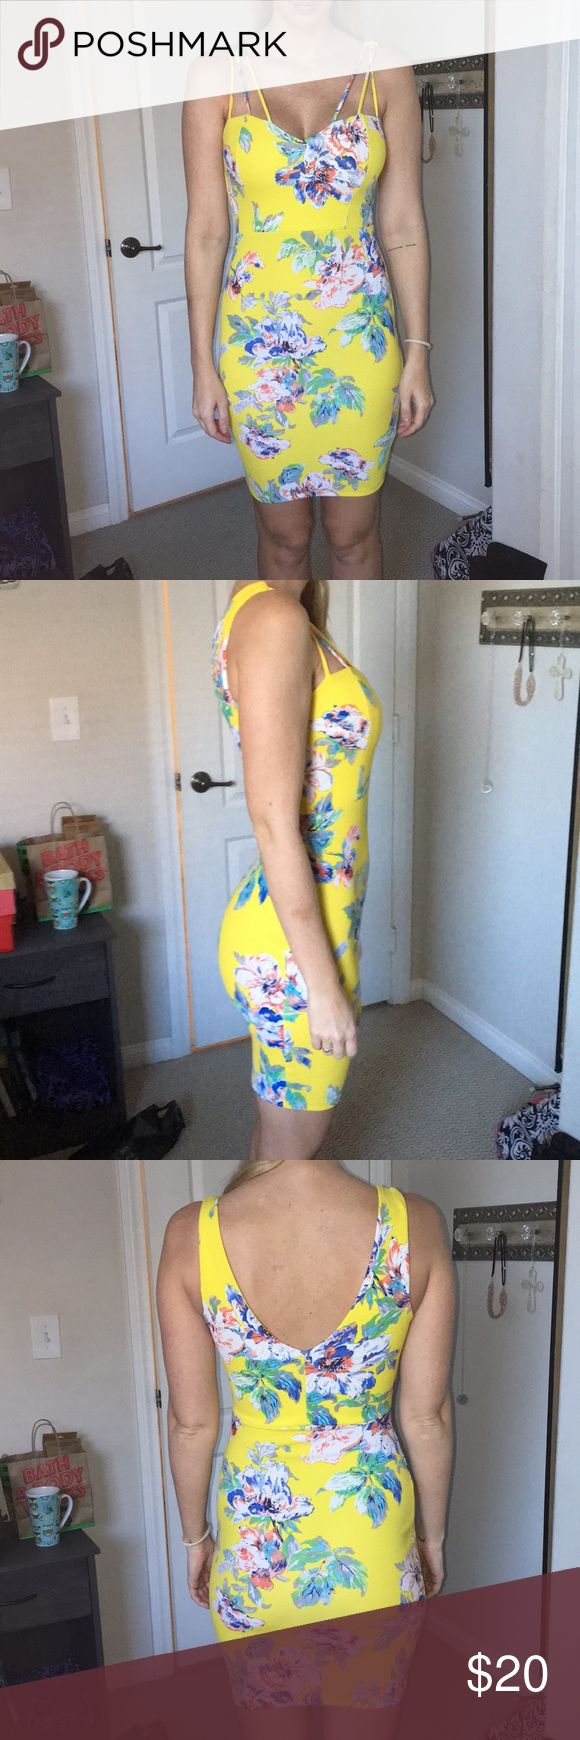 """yellow floral tunic dress From apricot lane boutique. Very stretchy, only worn once to a wedding. No flaws.  I'm 5'9"""" so it comes a little above the knee. I usually wear a size 4 just me Dresses Mini"""